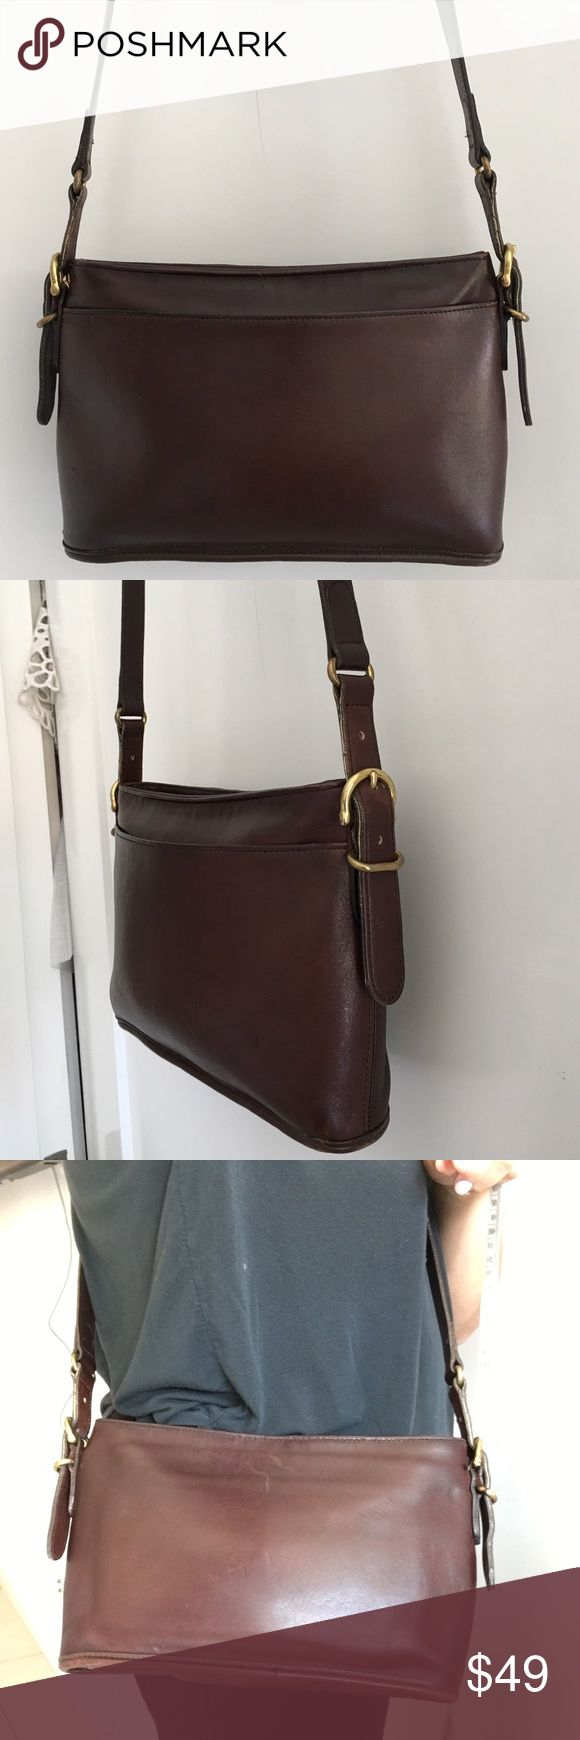 Vintage Coach Legacy Brown Crossbody Bag Vintage Authentic Coach Legacy Brown Crossbody Bag. Serial No. H7C-9802. Adjustable strap. Made in the USA. Signs of wear and patina given bags age. Please look at pictures for better reference. Happy shopping!! Coach Bags Crossbody Bags